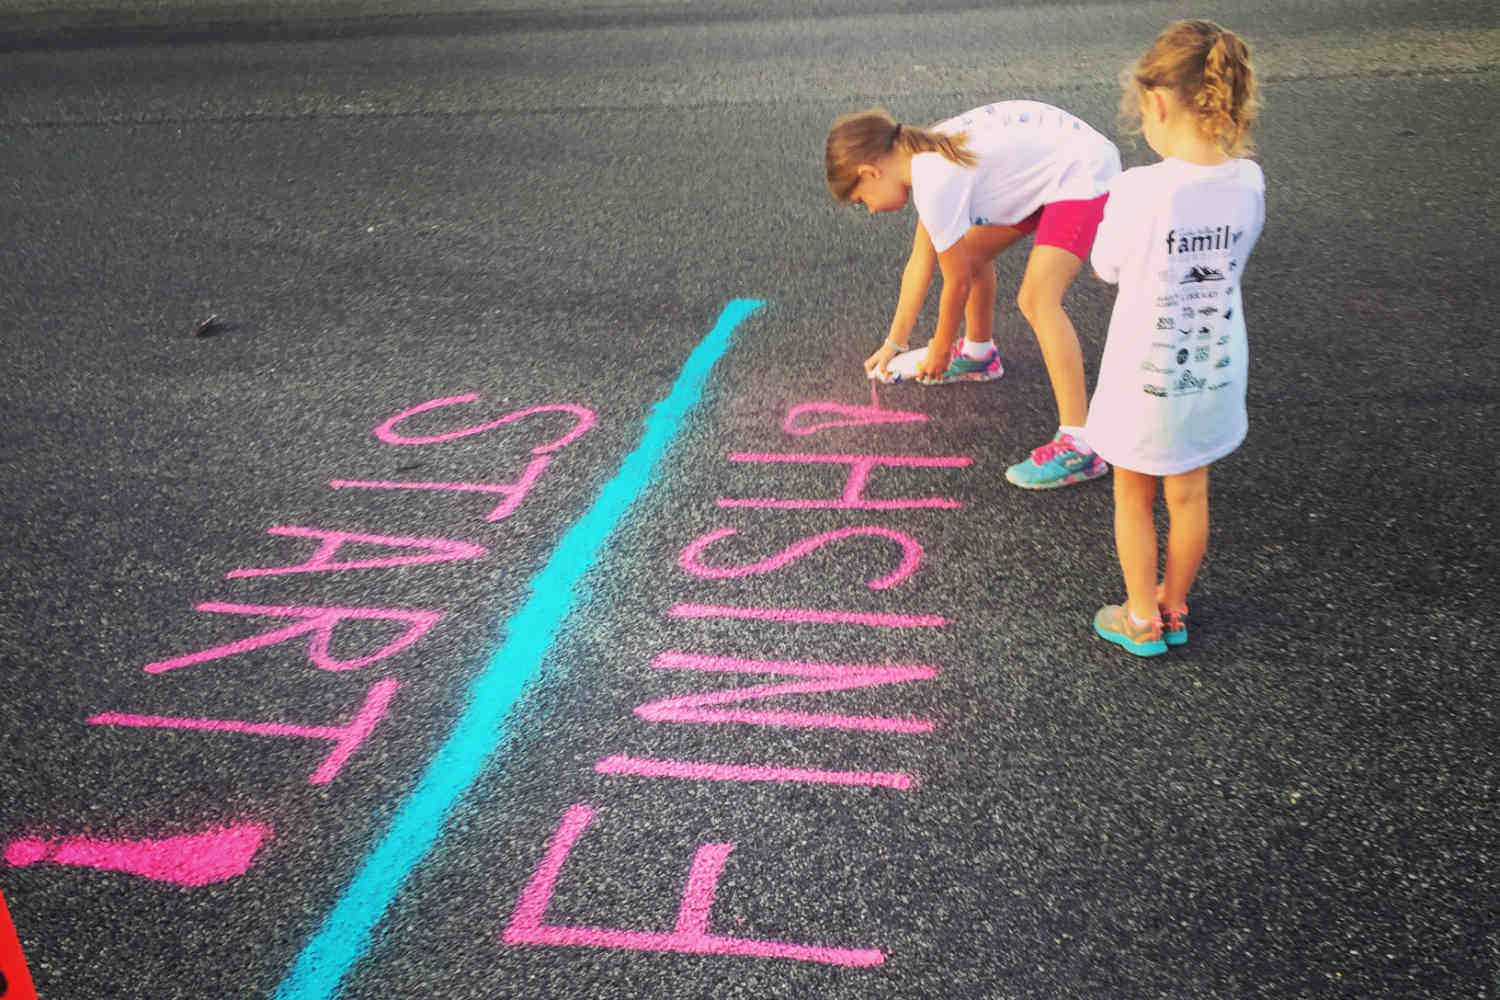 Children stand next to the words start and finish written on the ground in chalk